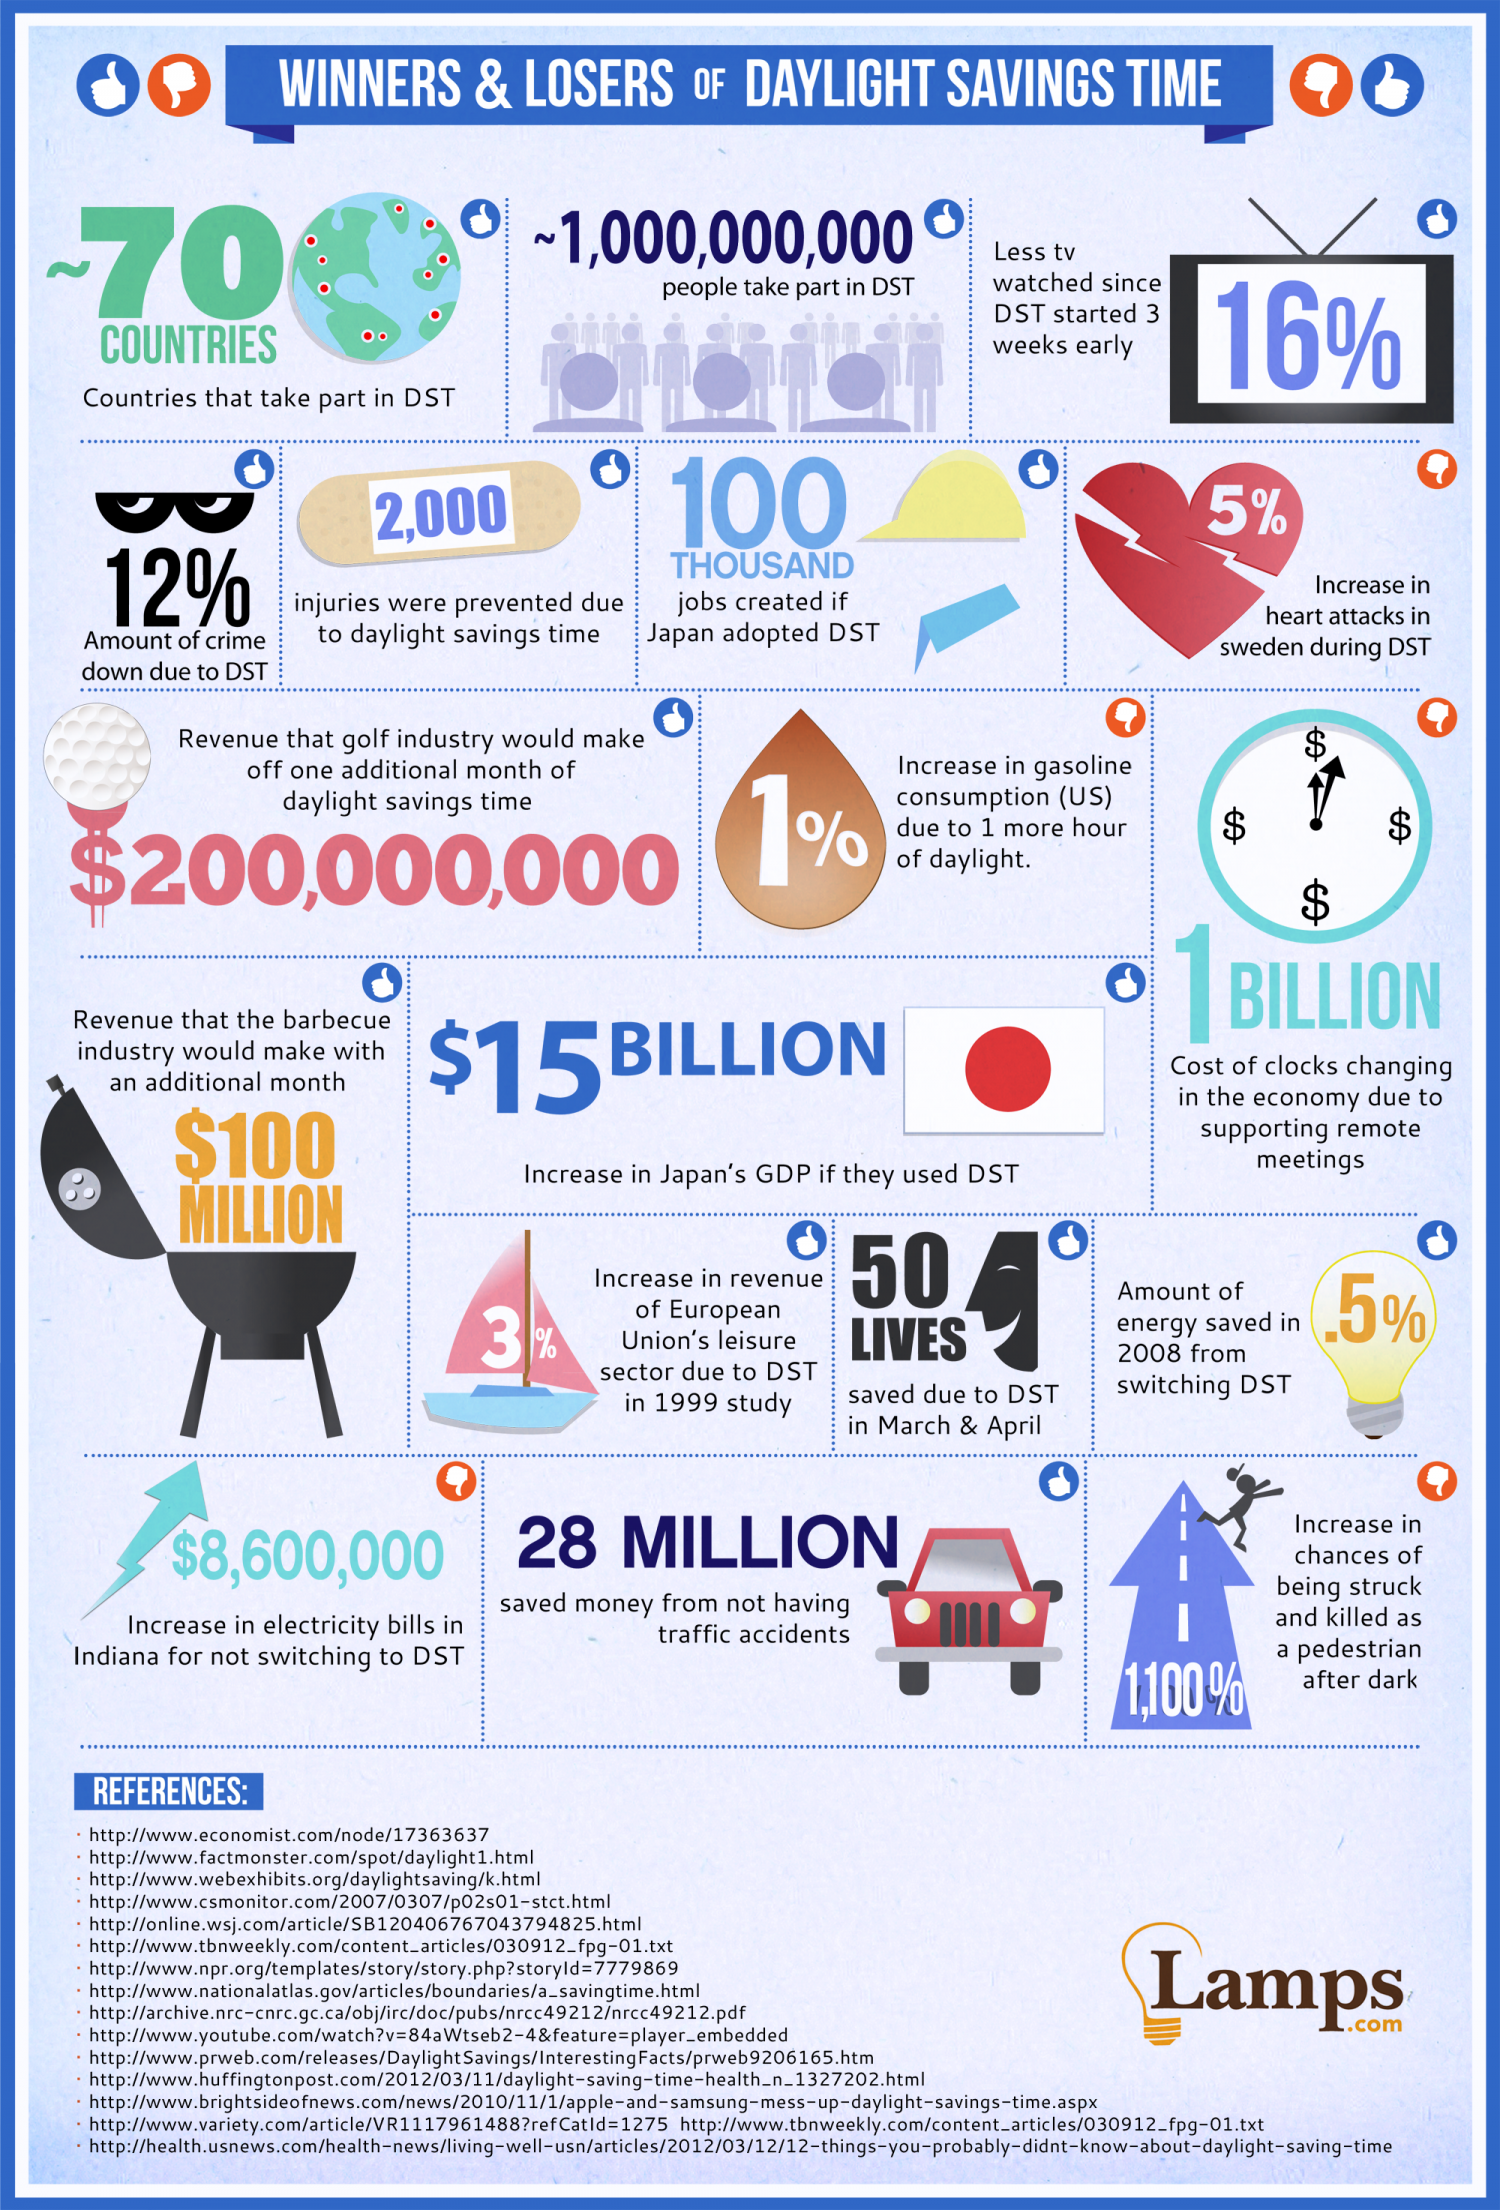 Winners & Losers of Daylight Savings Time Infographic